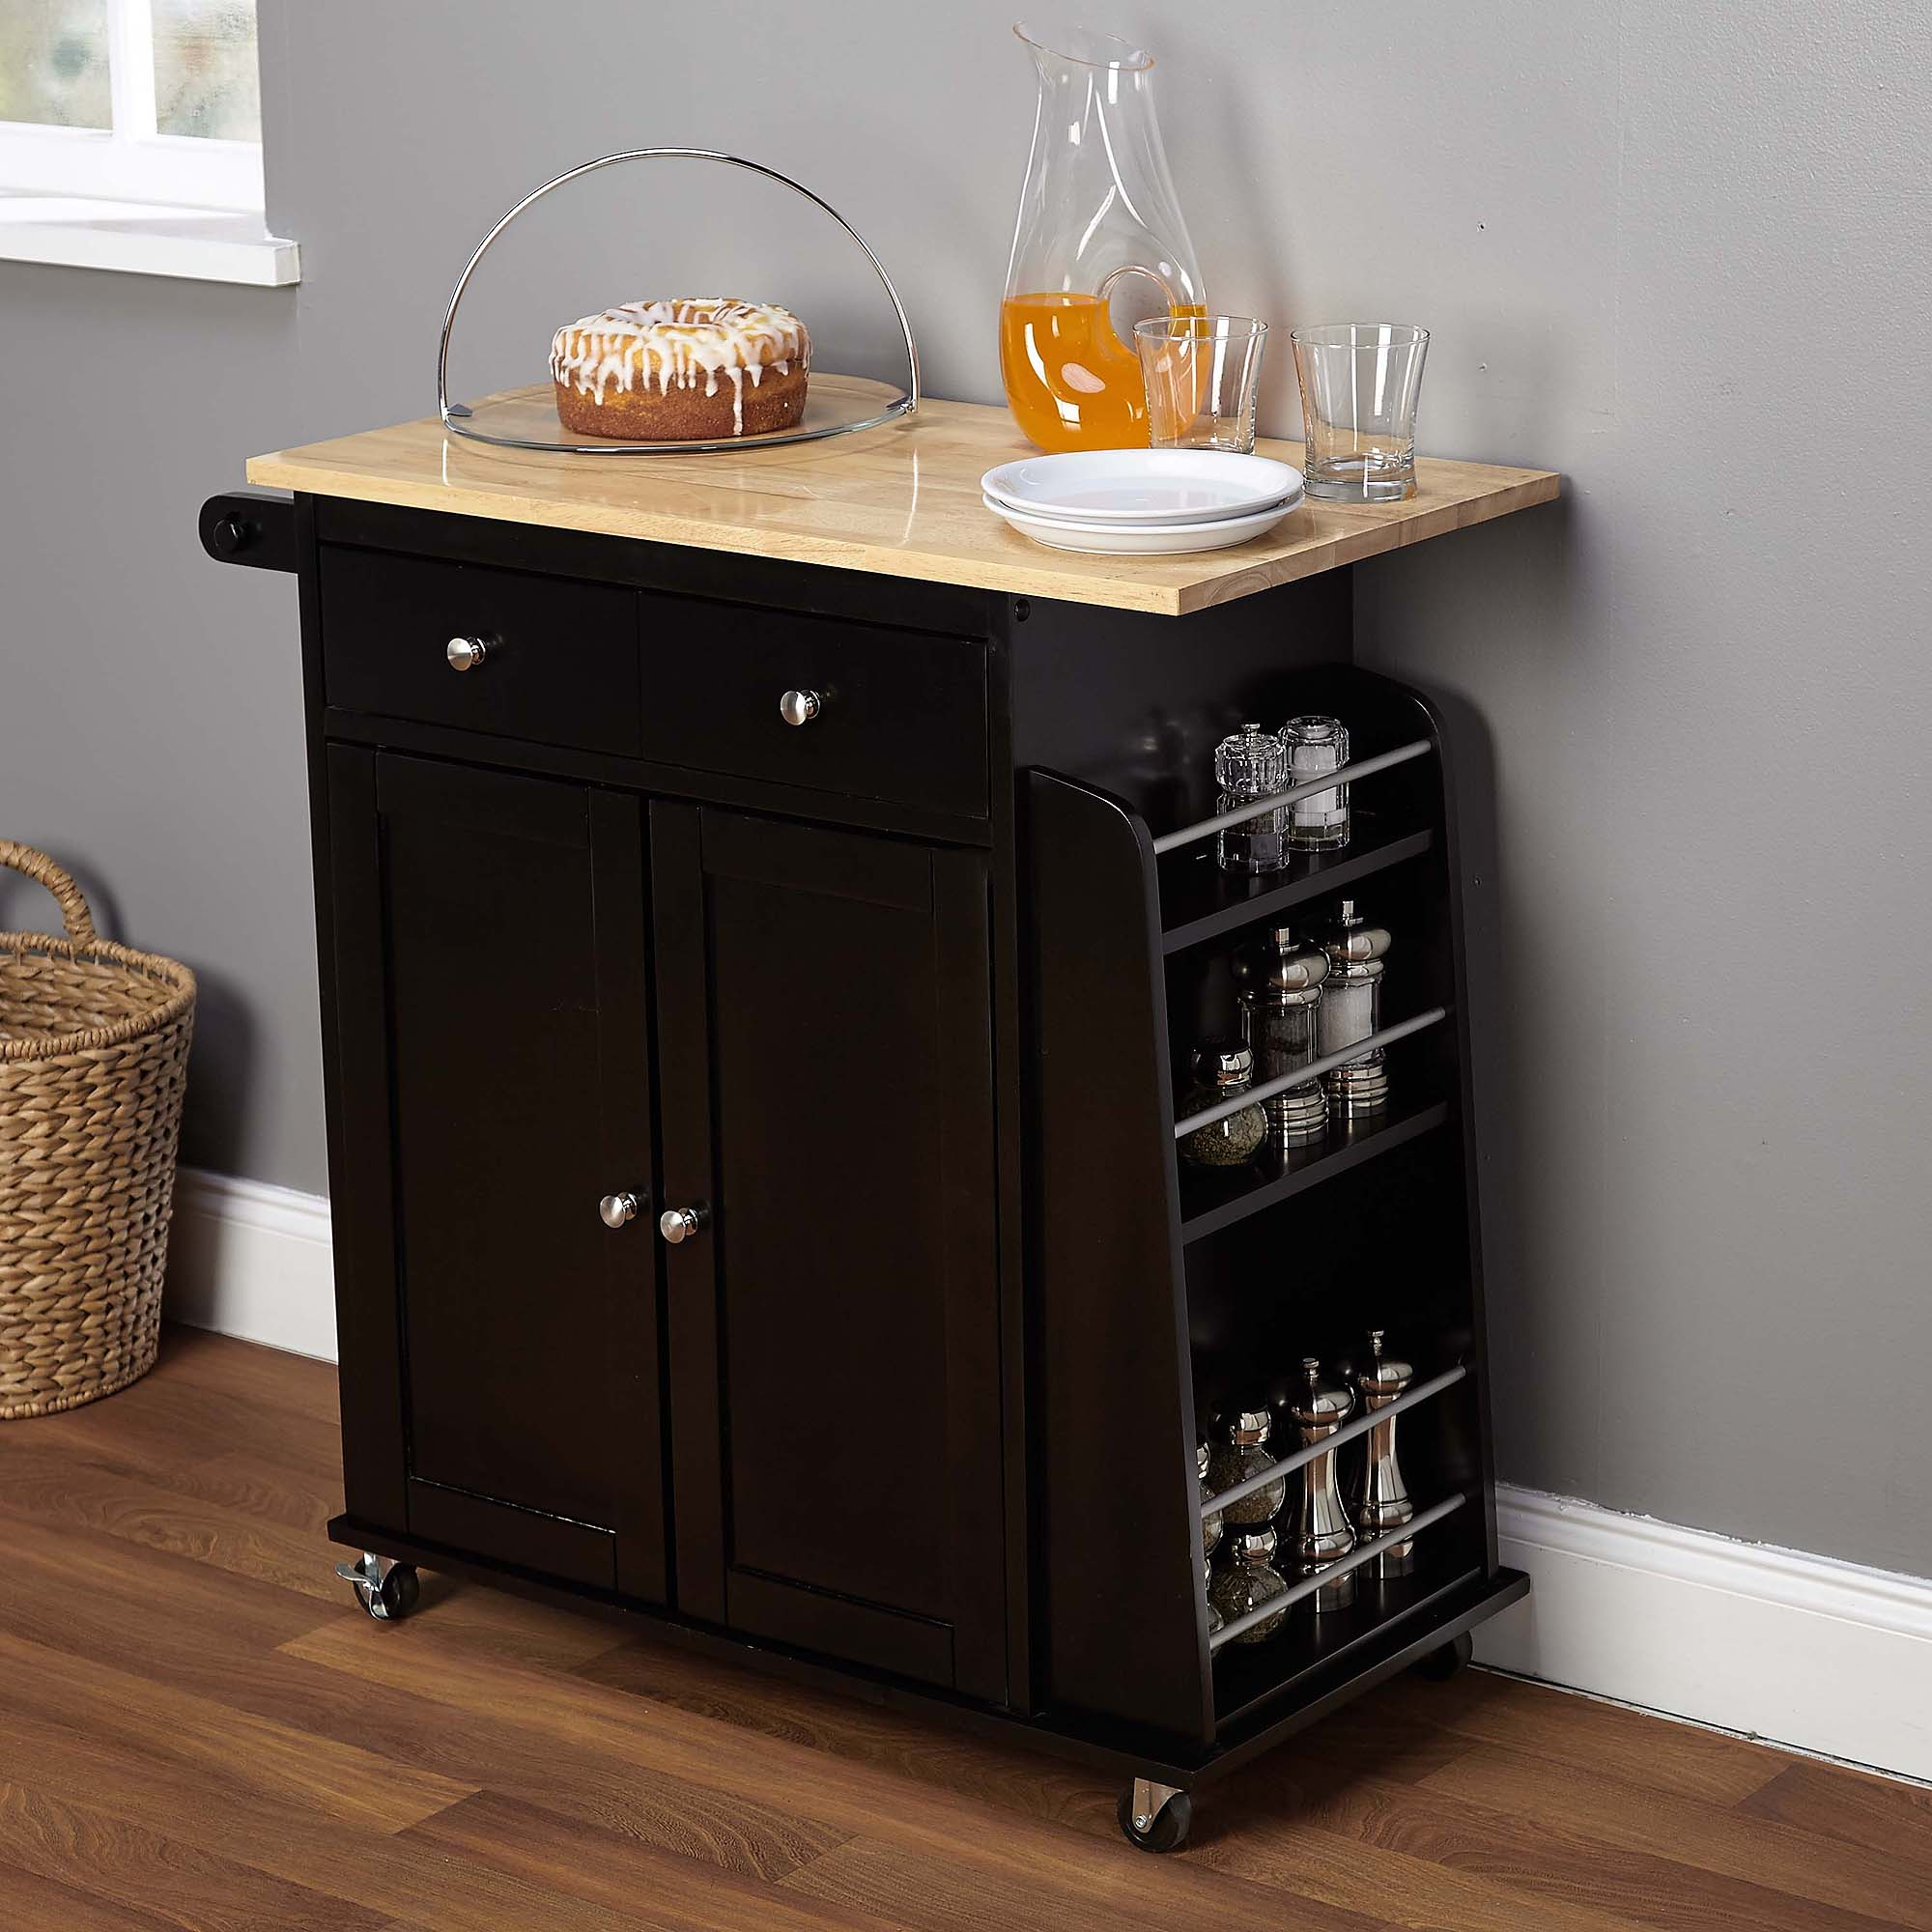 Sonoma Kitchen Cart Multiple Colors Walmartcom - Kitchen island cart walmart